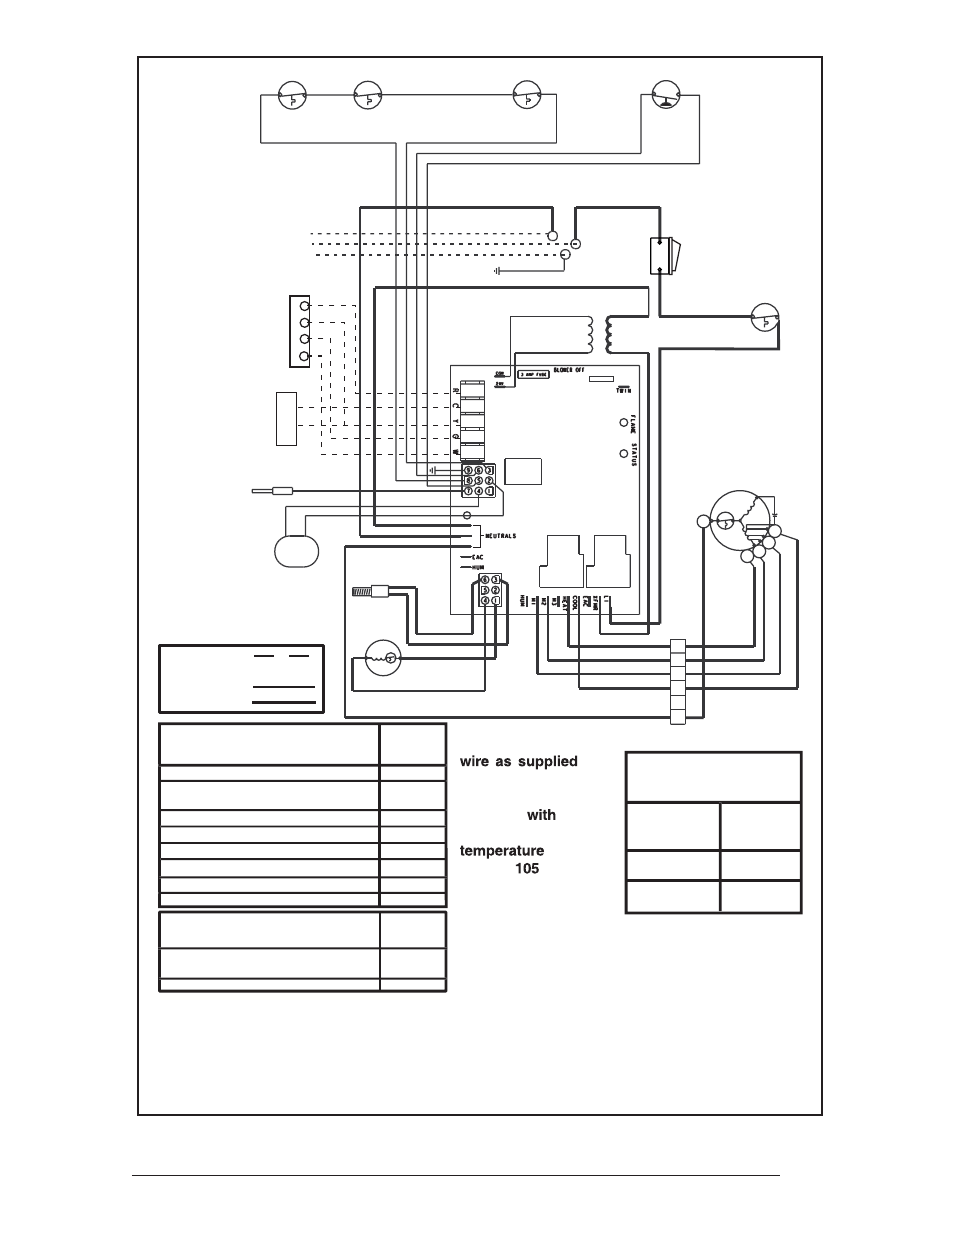 medium resolution of 33 figure 30 downflow furnace wiring diagram legend nordyne 33 figure 30 downflow furnace wiring